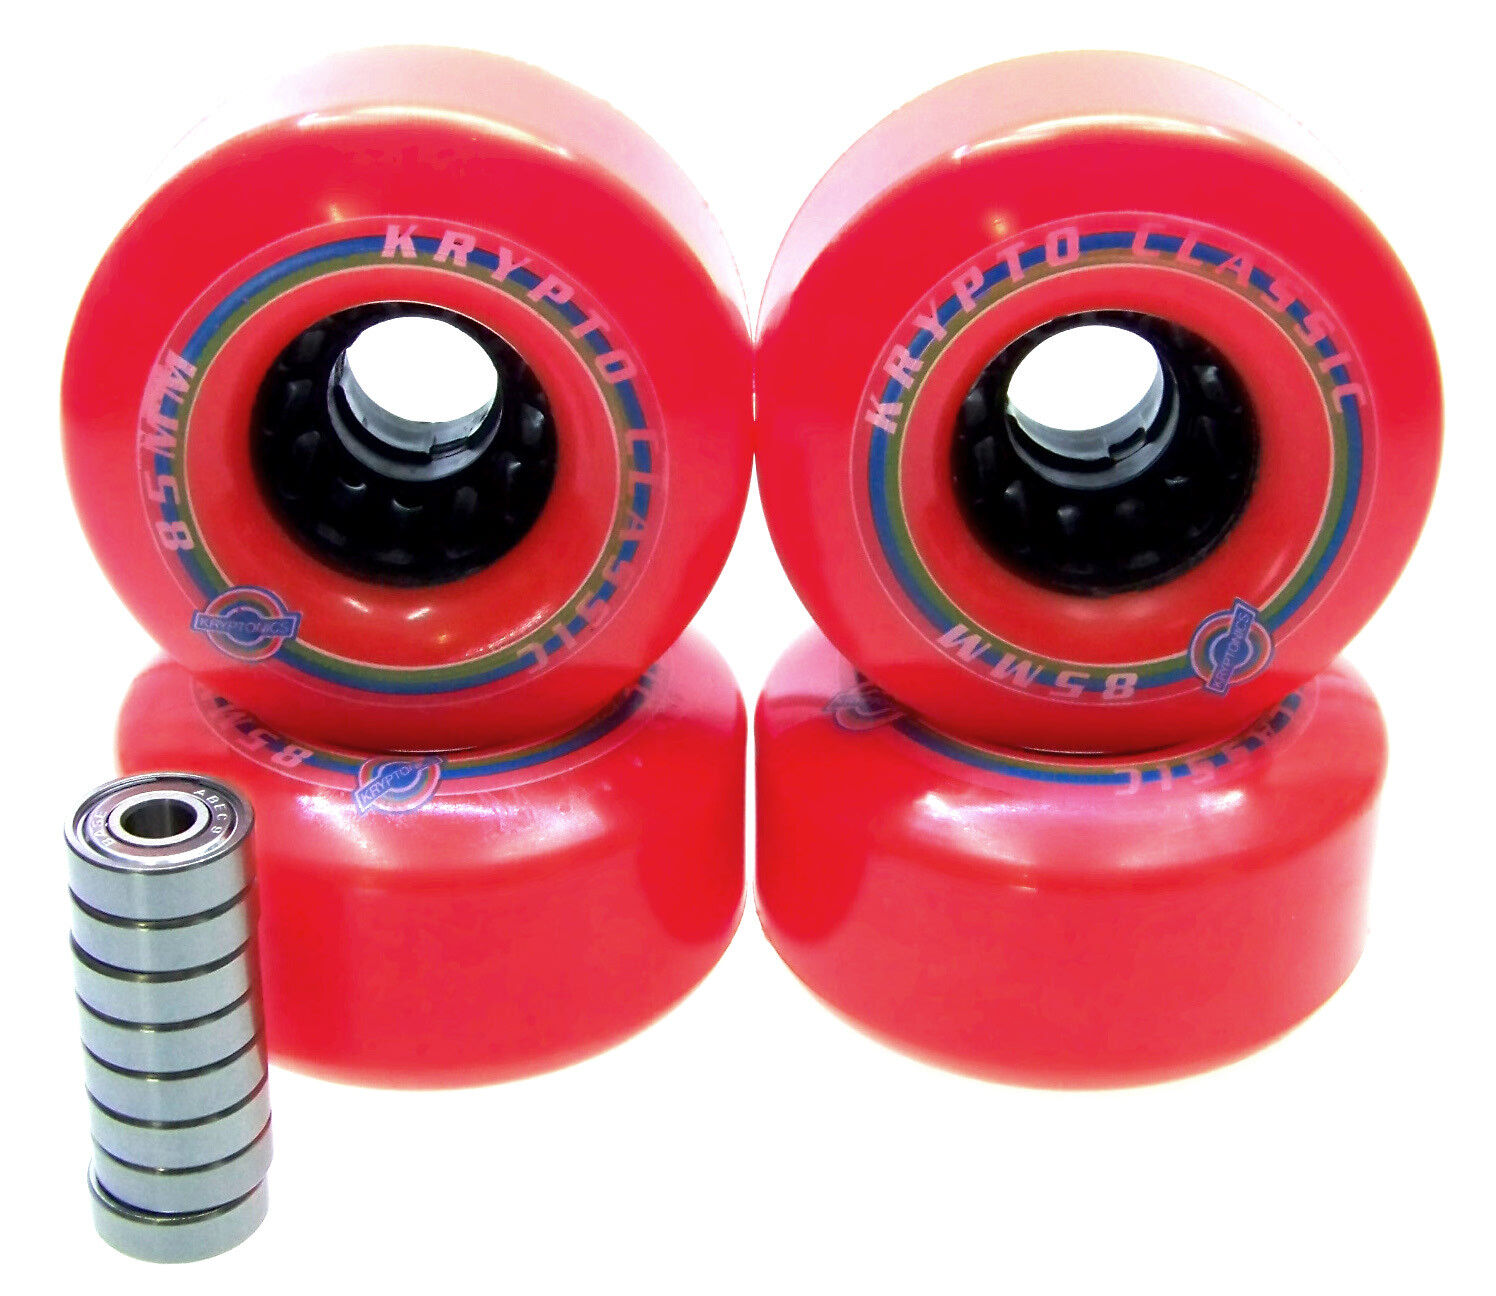 Longboard Rolle Kryptonics Classic 85mm / 80A ABEC Lager Set Ersatzrolle ROT